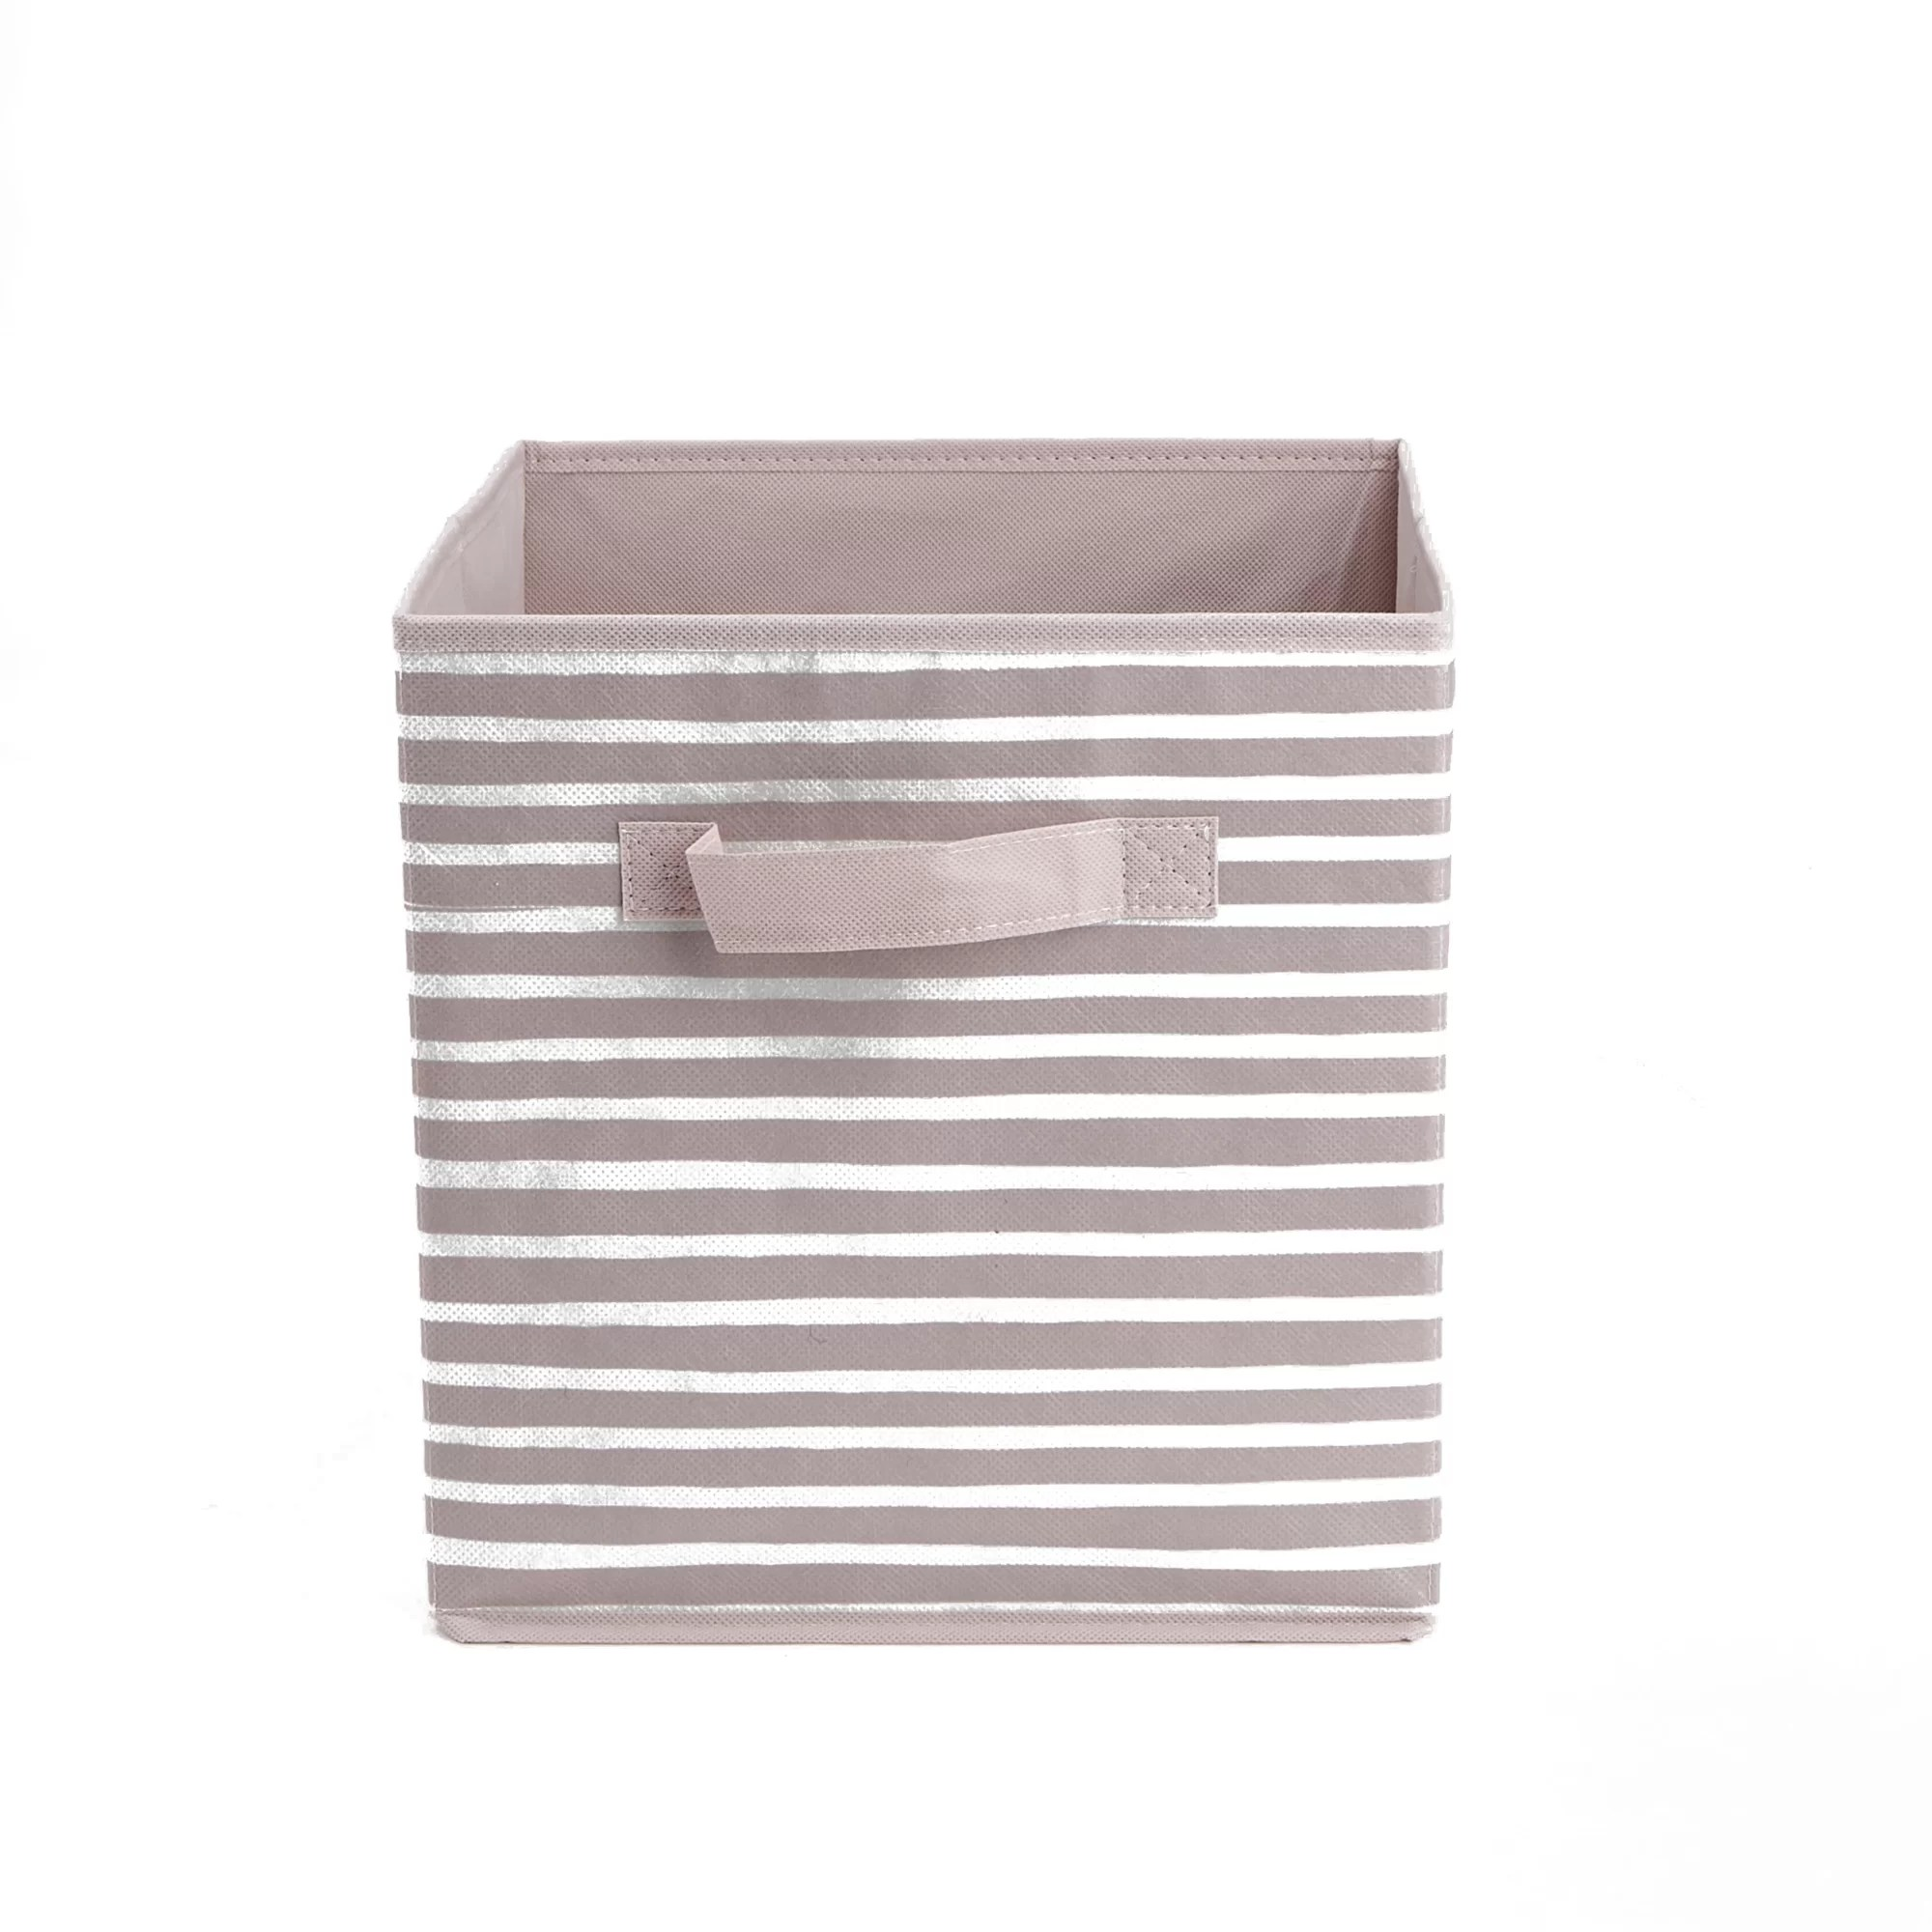 Pink Bins Mind Reader Storage Bin Stripes Design Foldable Storage Basket With Handles Decorative Storage Bins Cube Organizer Bin Bathroom Bedroom